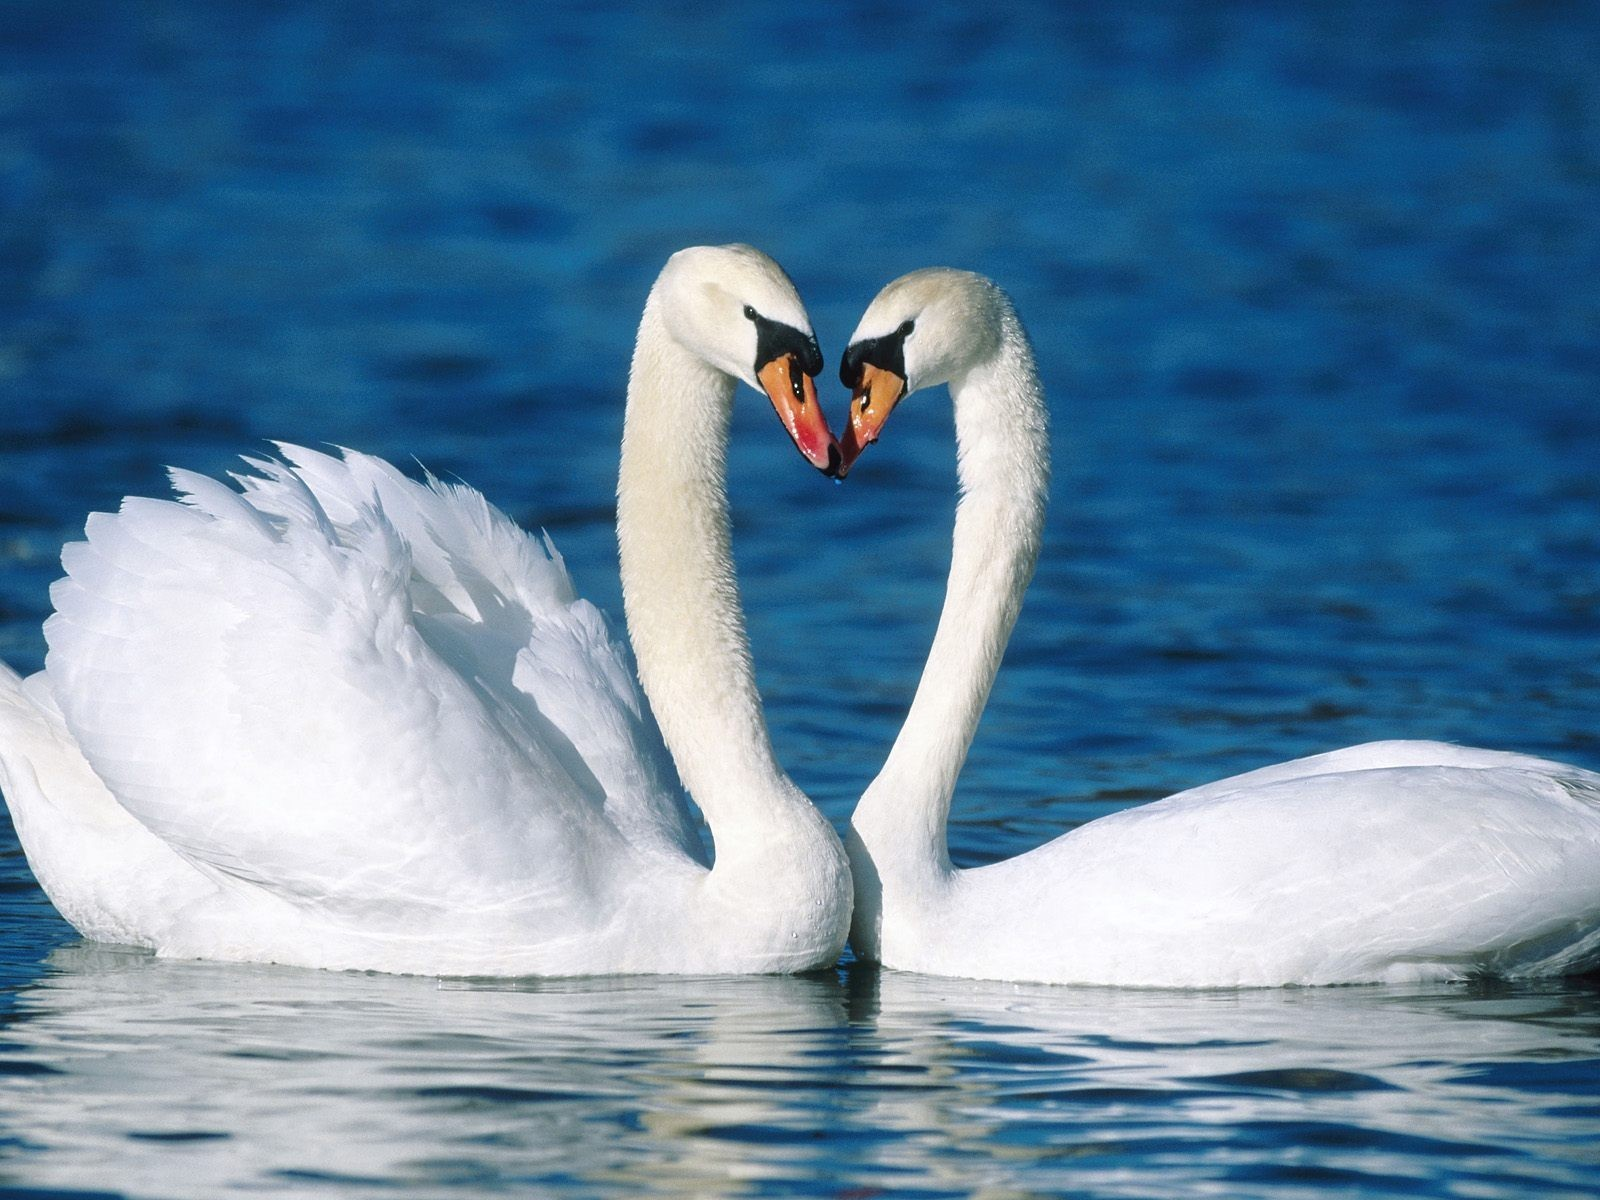 19656 download wallpaper Animals, Birds, Swans screensavers and pictures for free